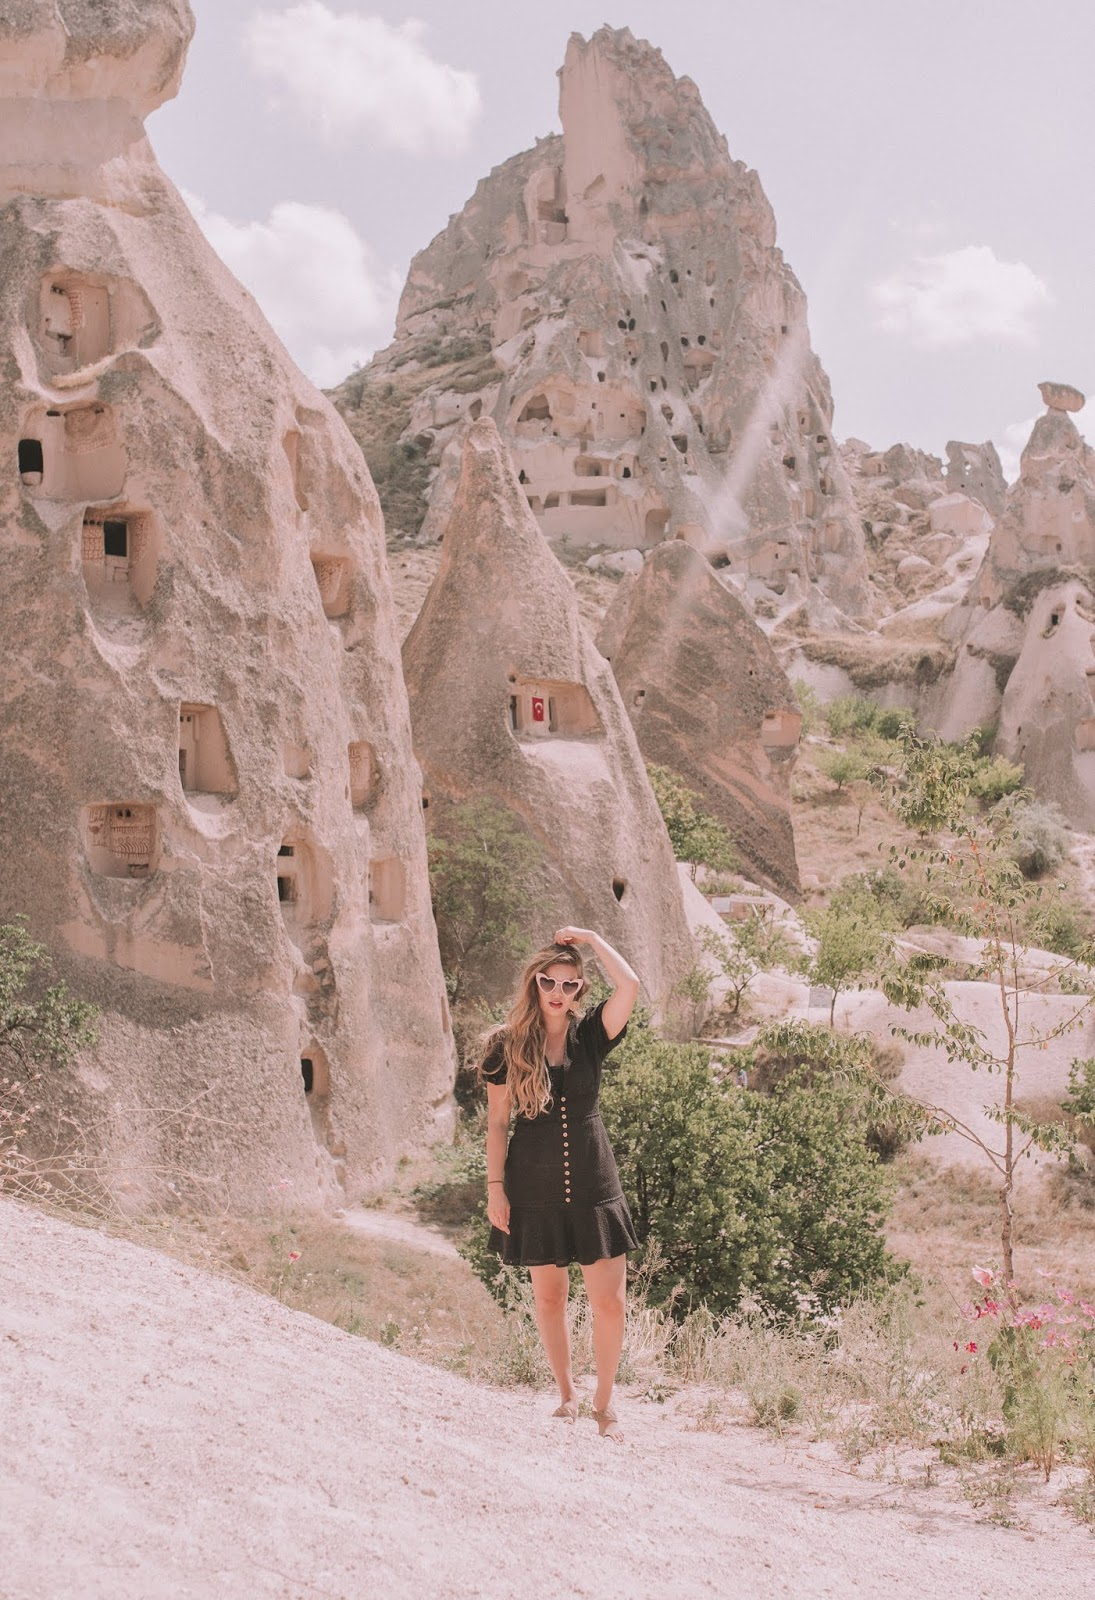 cappadocia, turkey nataly jennings what to do in cappadocia